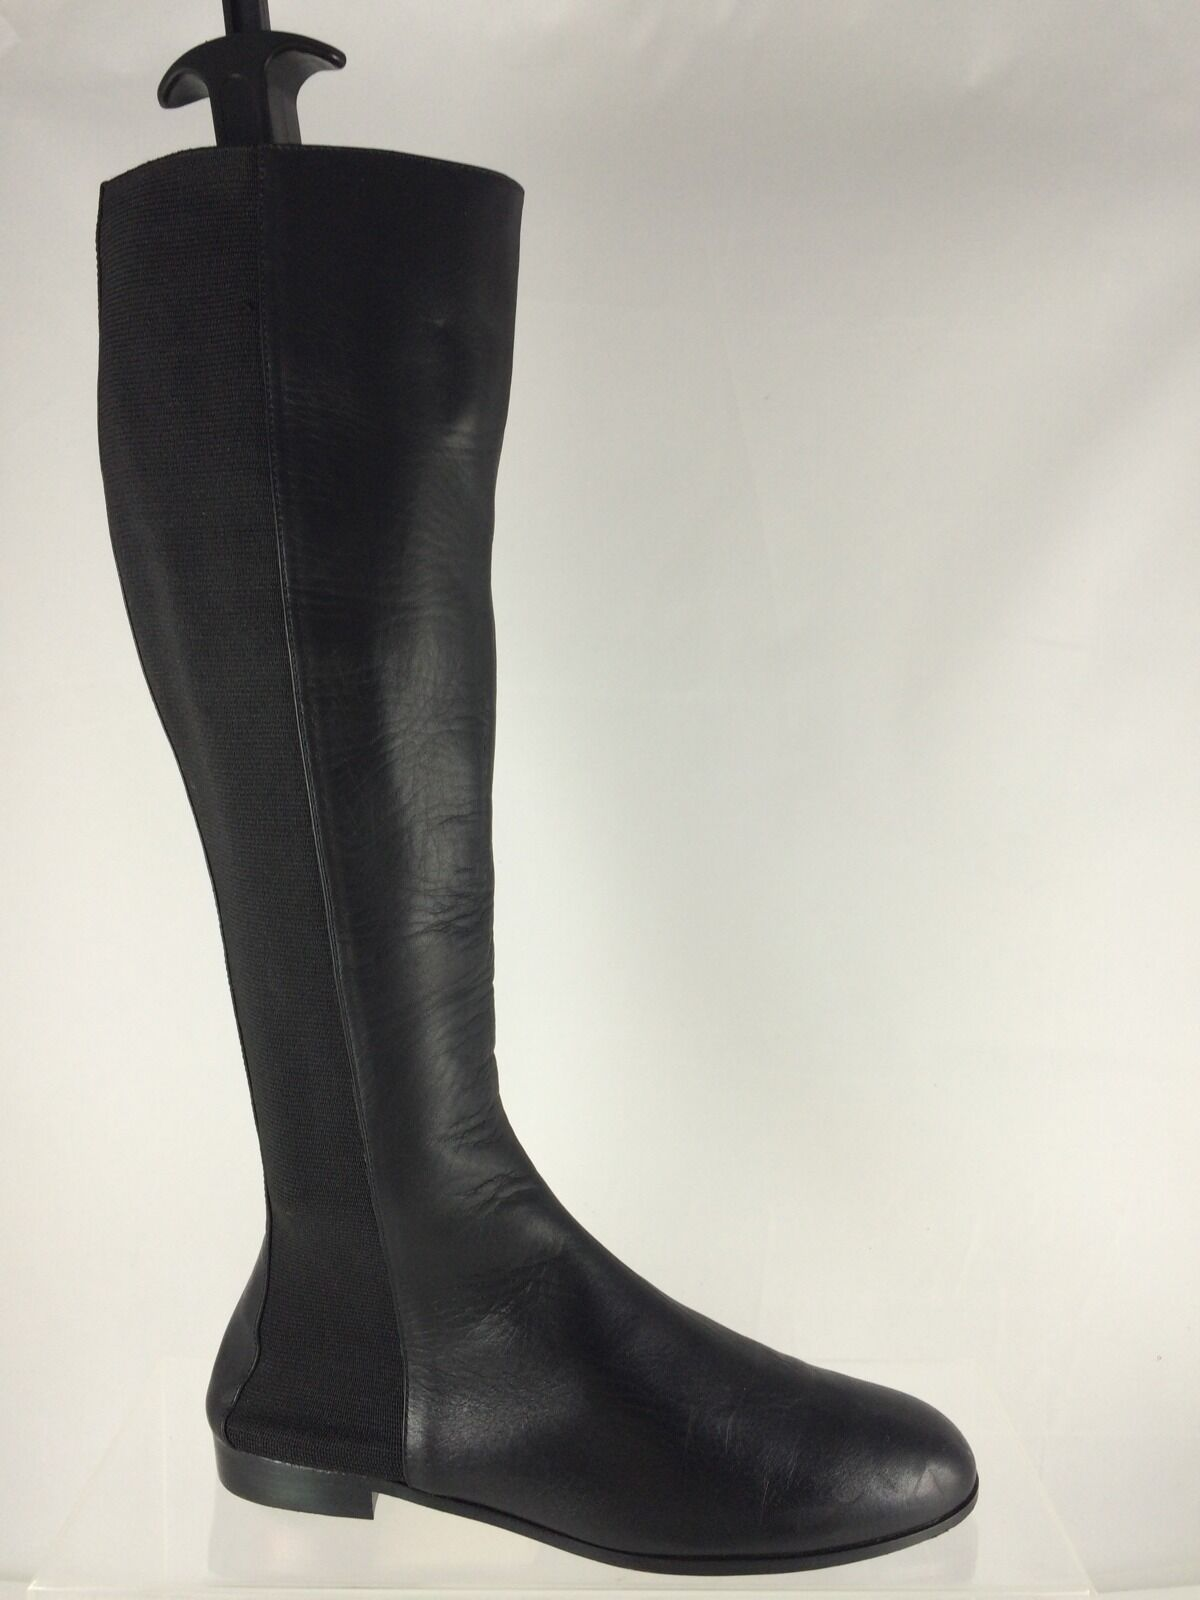 1275 Manolo Blahnik Womens Black Leather Tall Boots 37.5 M